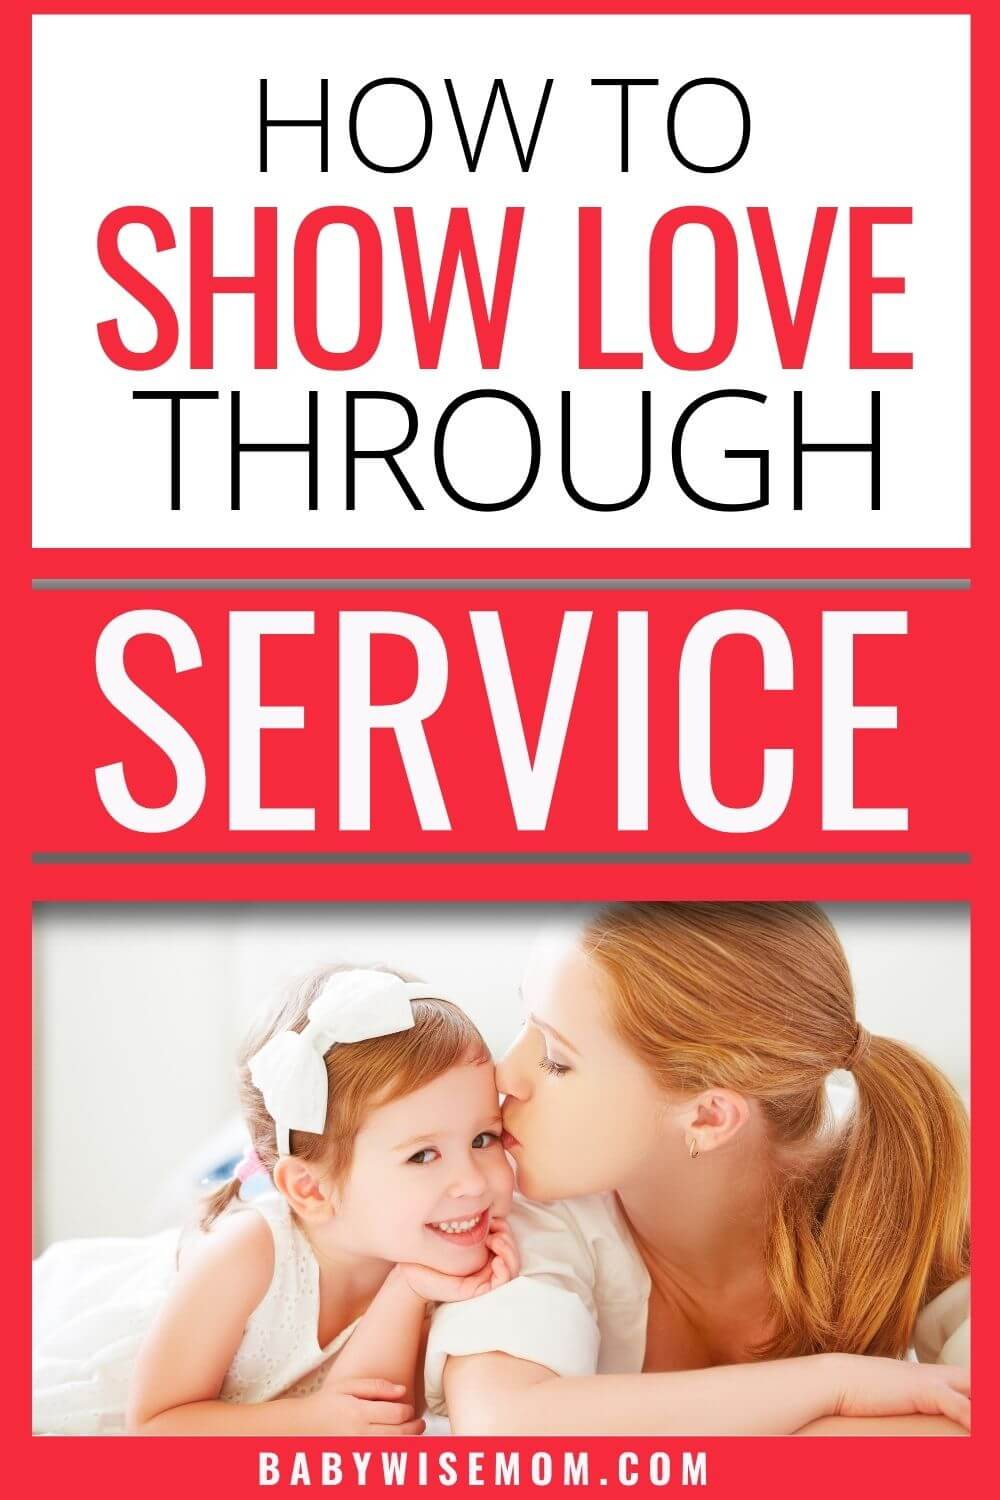 How to show love through service